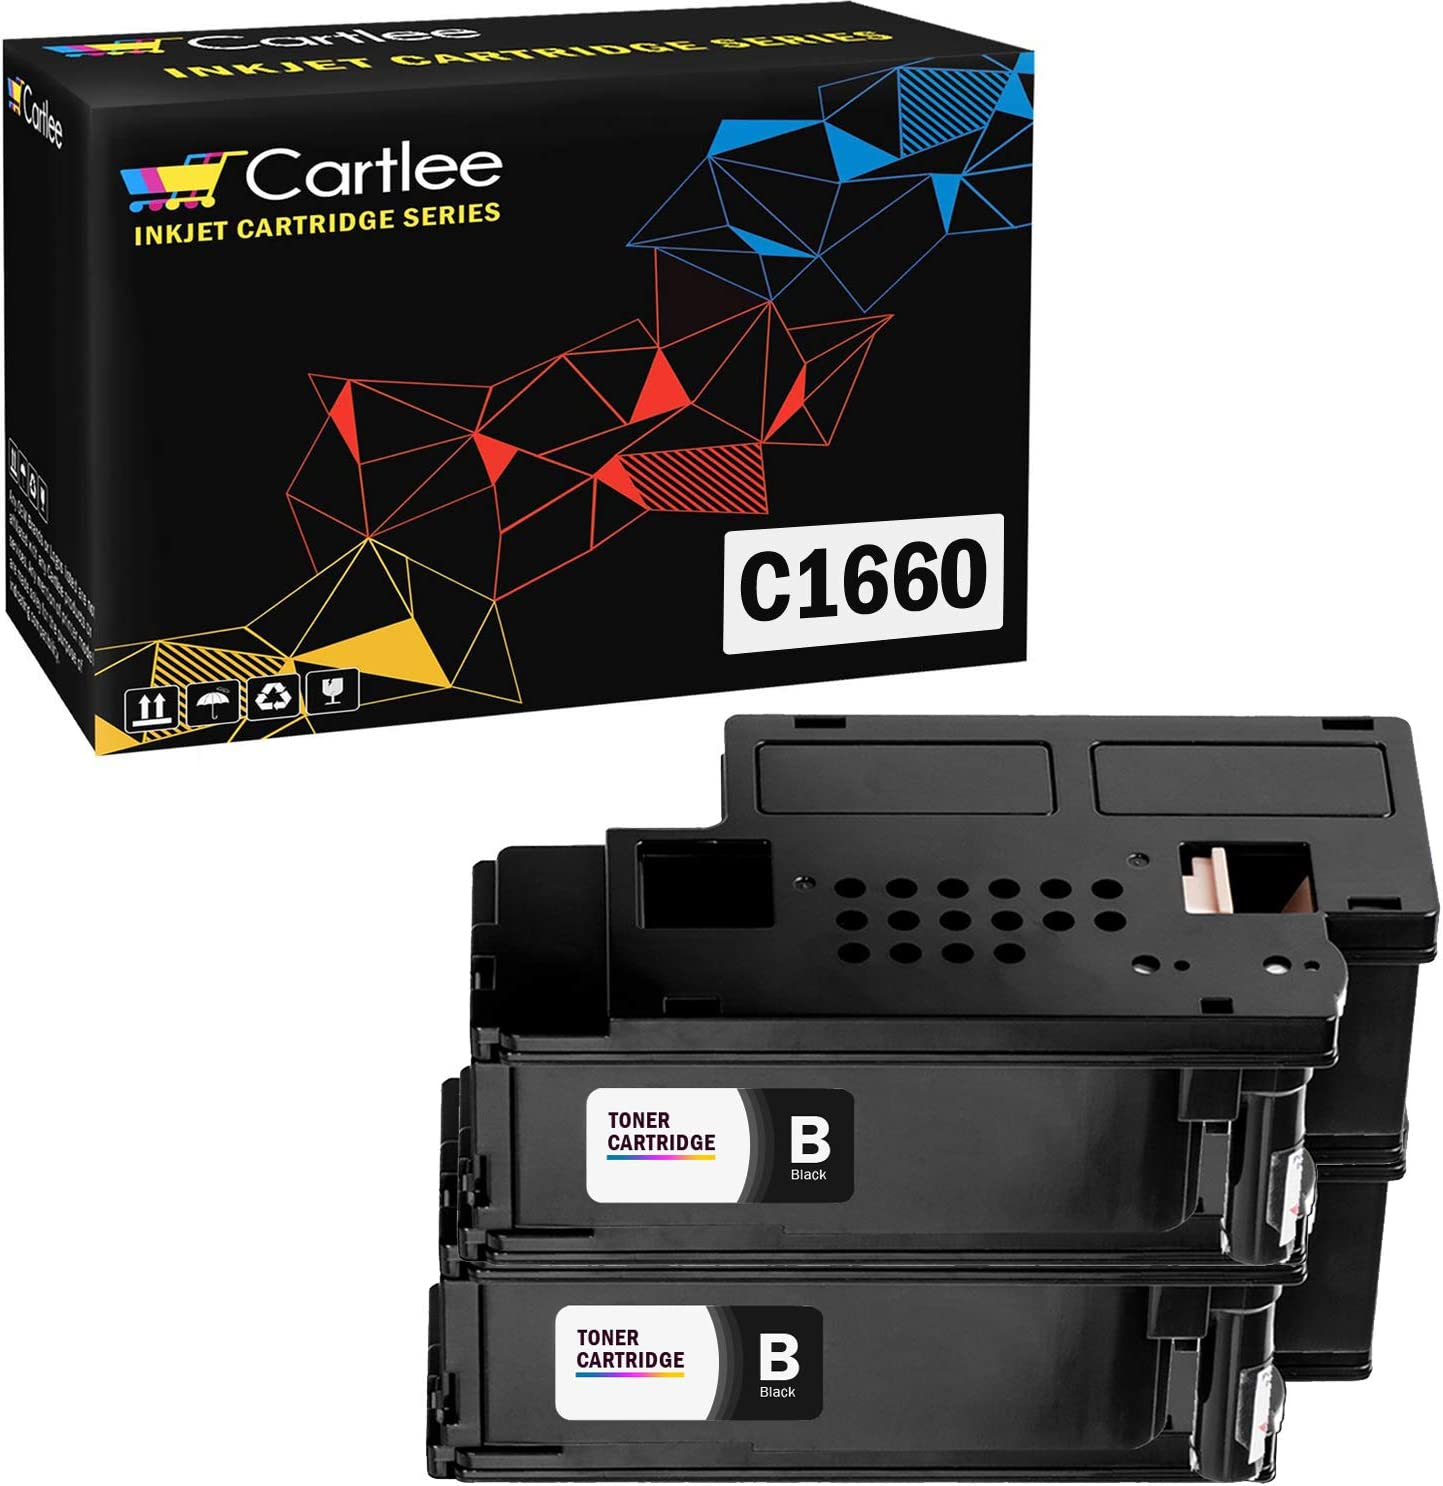 Cartlee Set of 2 Black Compatible High Yield Laser Toner Cartridges Replacement for Dell C1660, C1660W, C1660cnw, 1660, 1660w, 1660cnw 4G9HP Printers